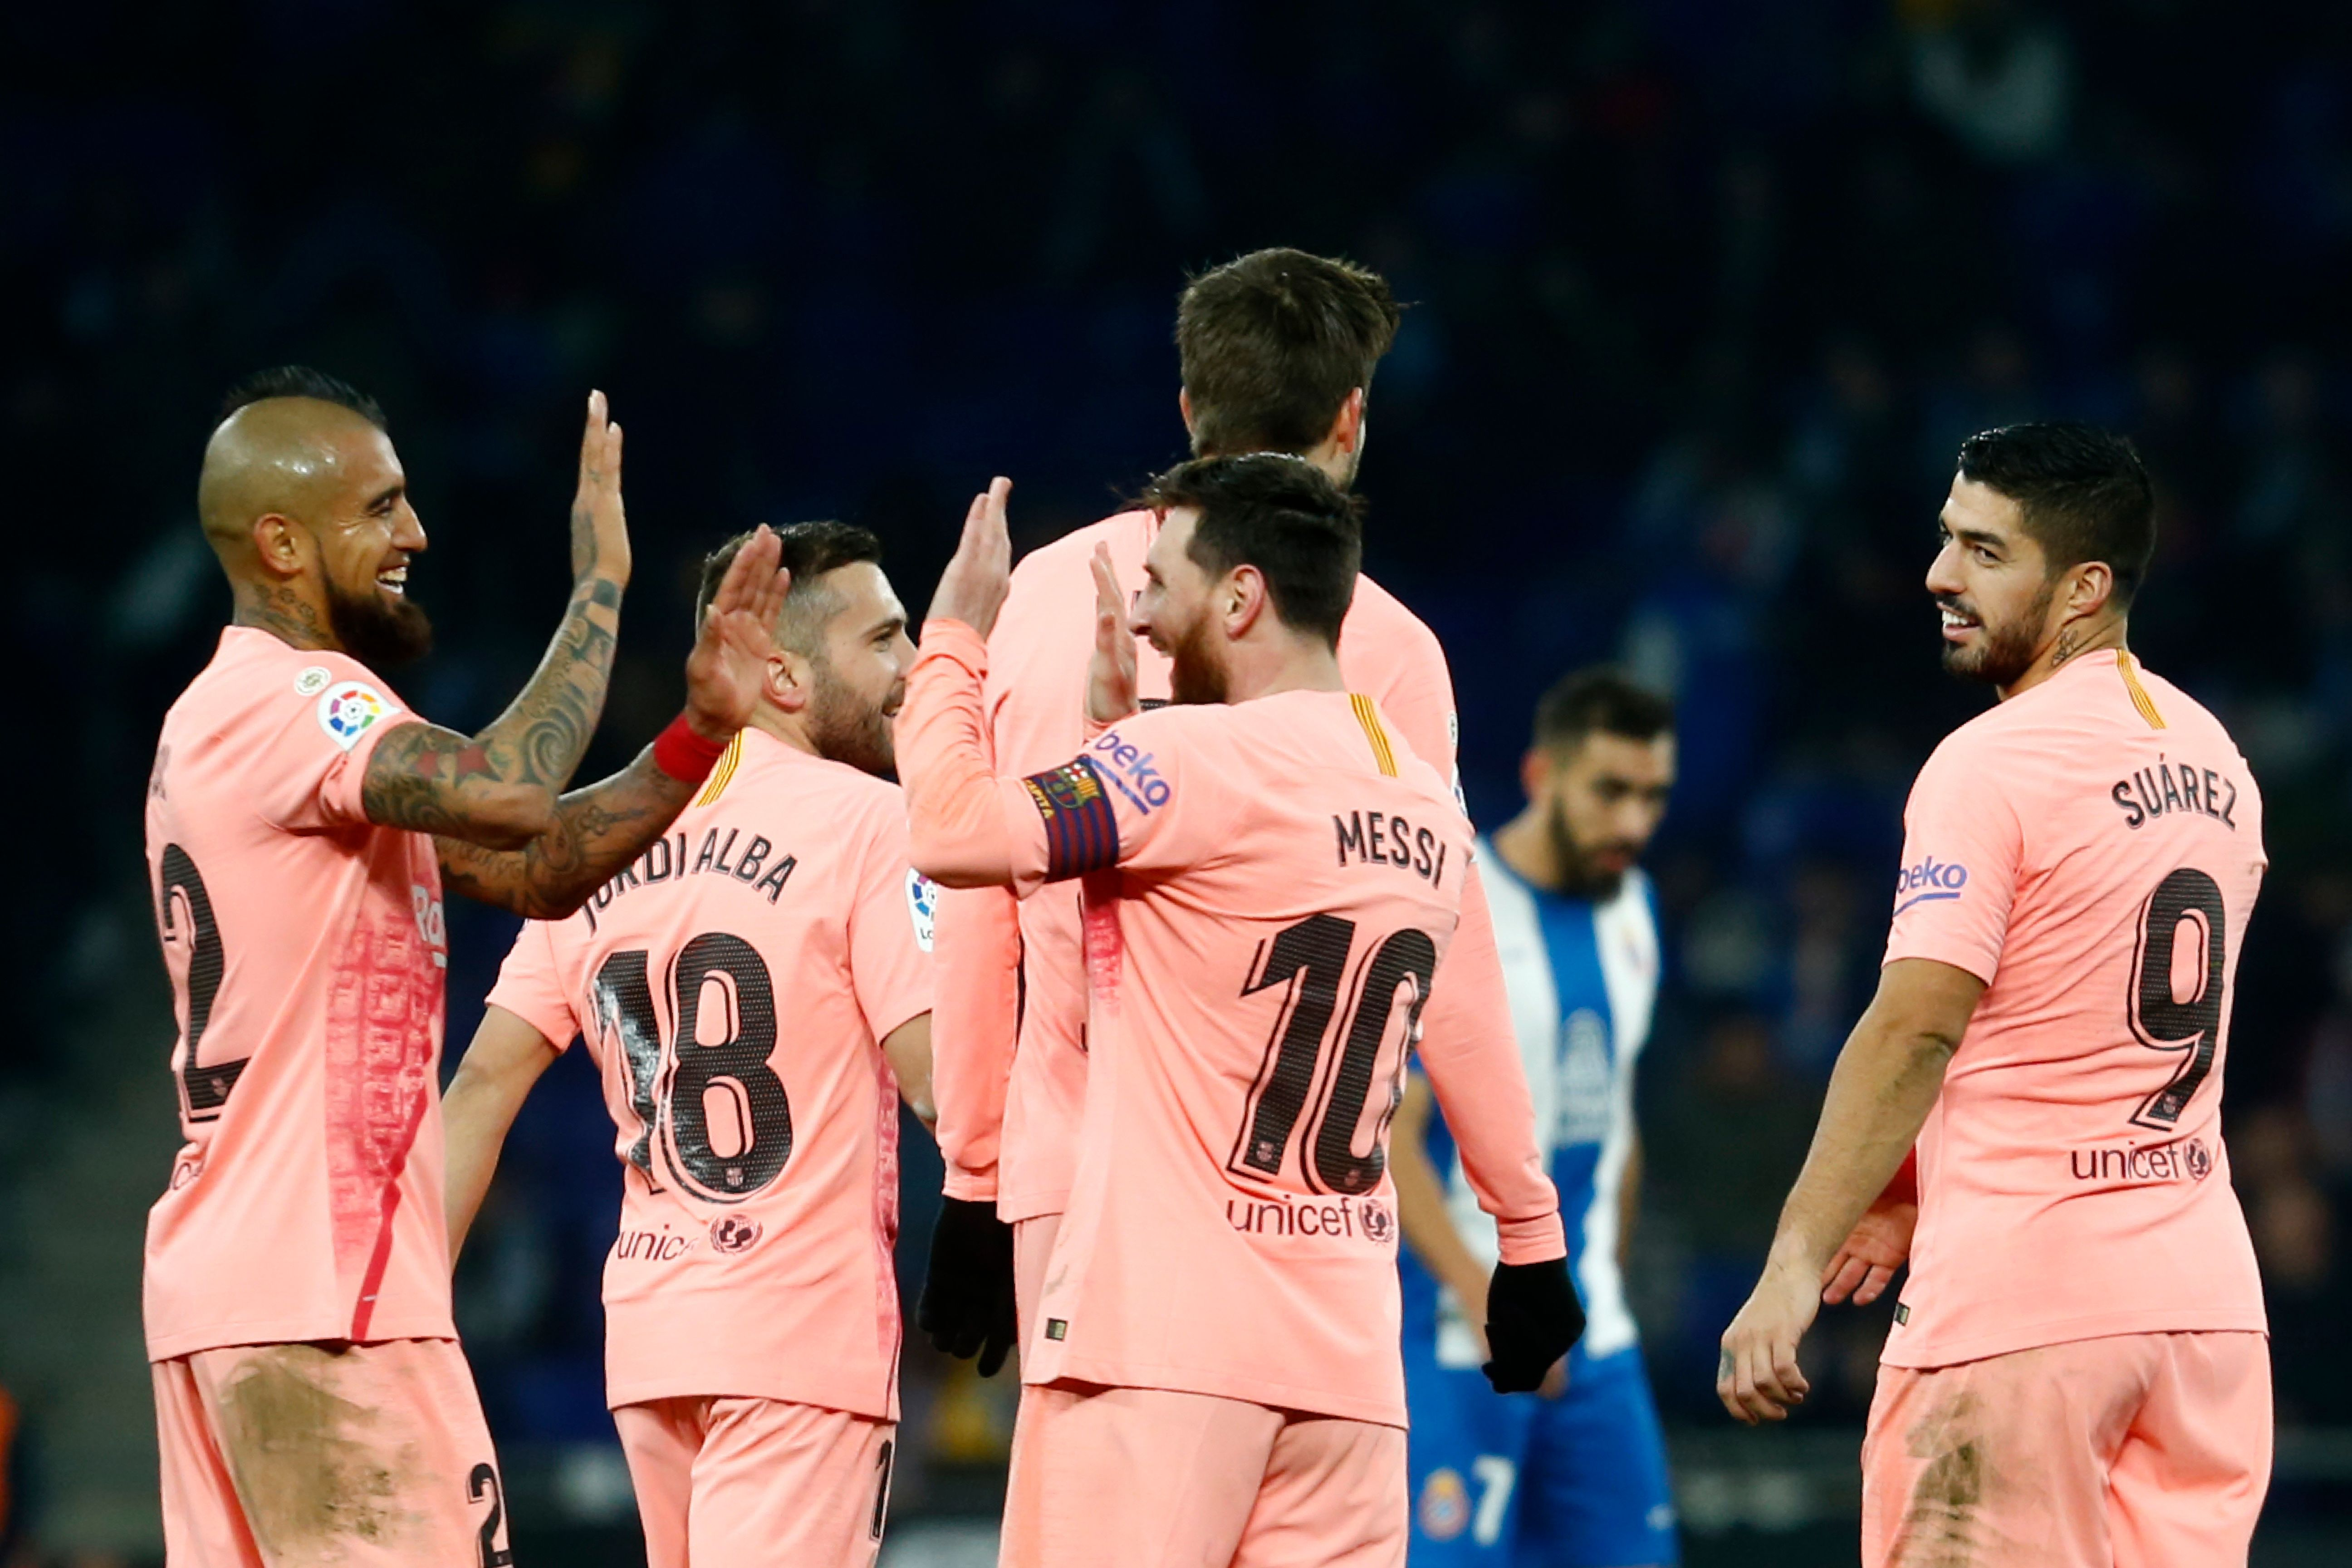 sports news, Football news in hindi, La Liga, Messi, star of Barcelona's victory, 2 free kicks, first time in a match